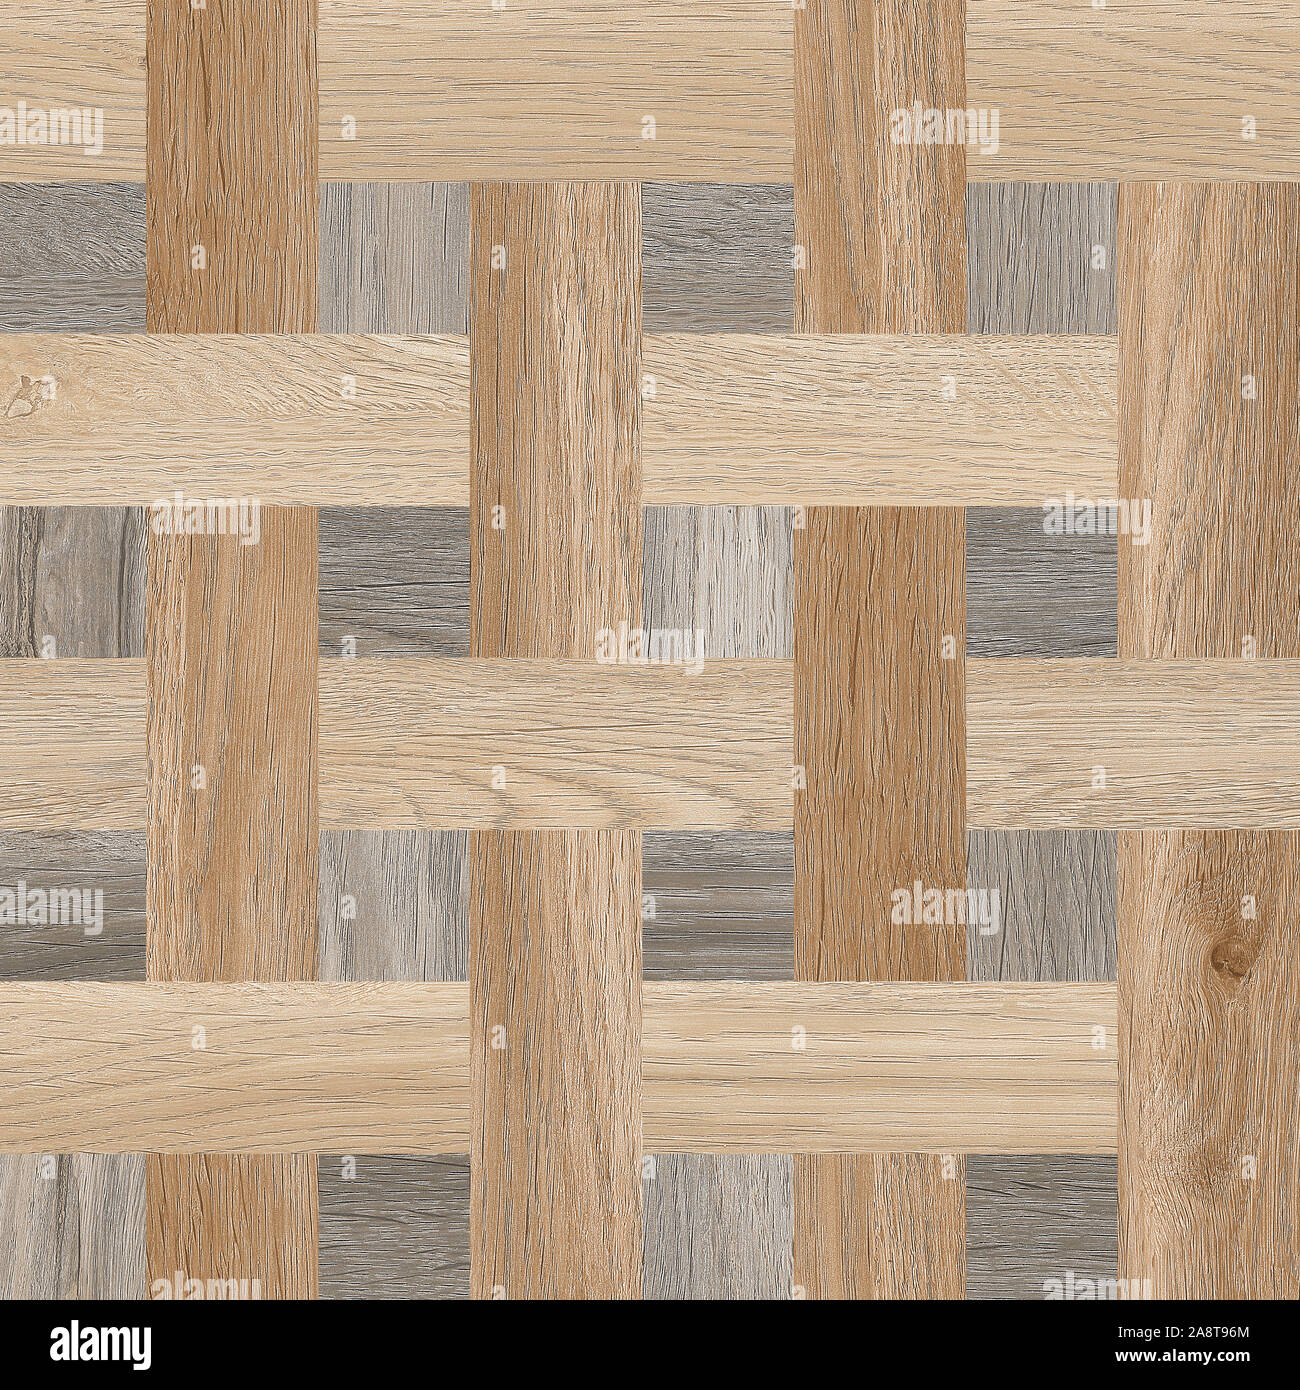 Abstract Paneling Pattern Seamless Background Decorative Textures Wood Texture Fine Natural Structure Laminate Floor Continuous Replication Stock Photo Alamy